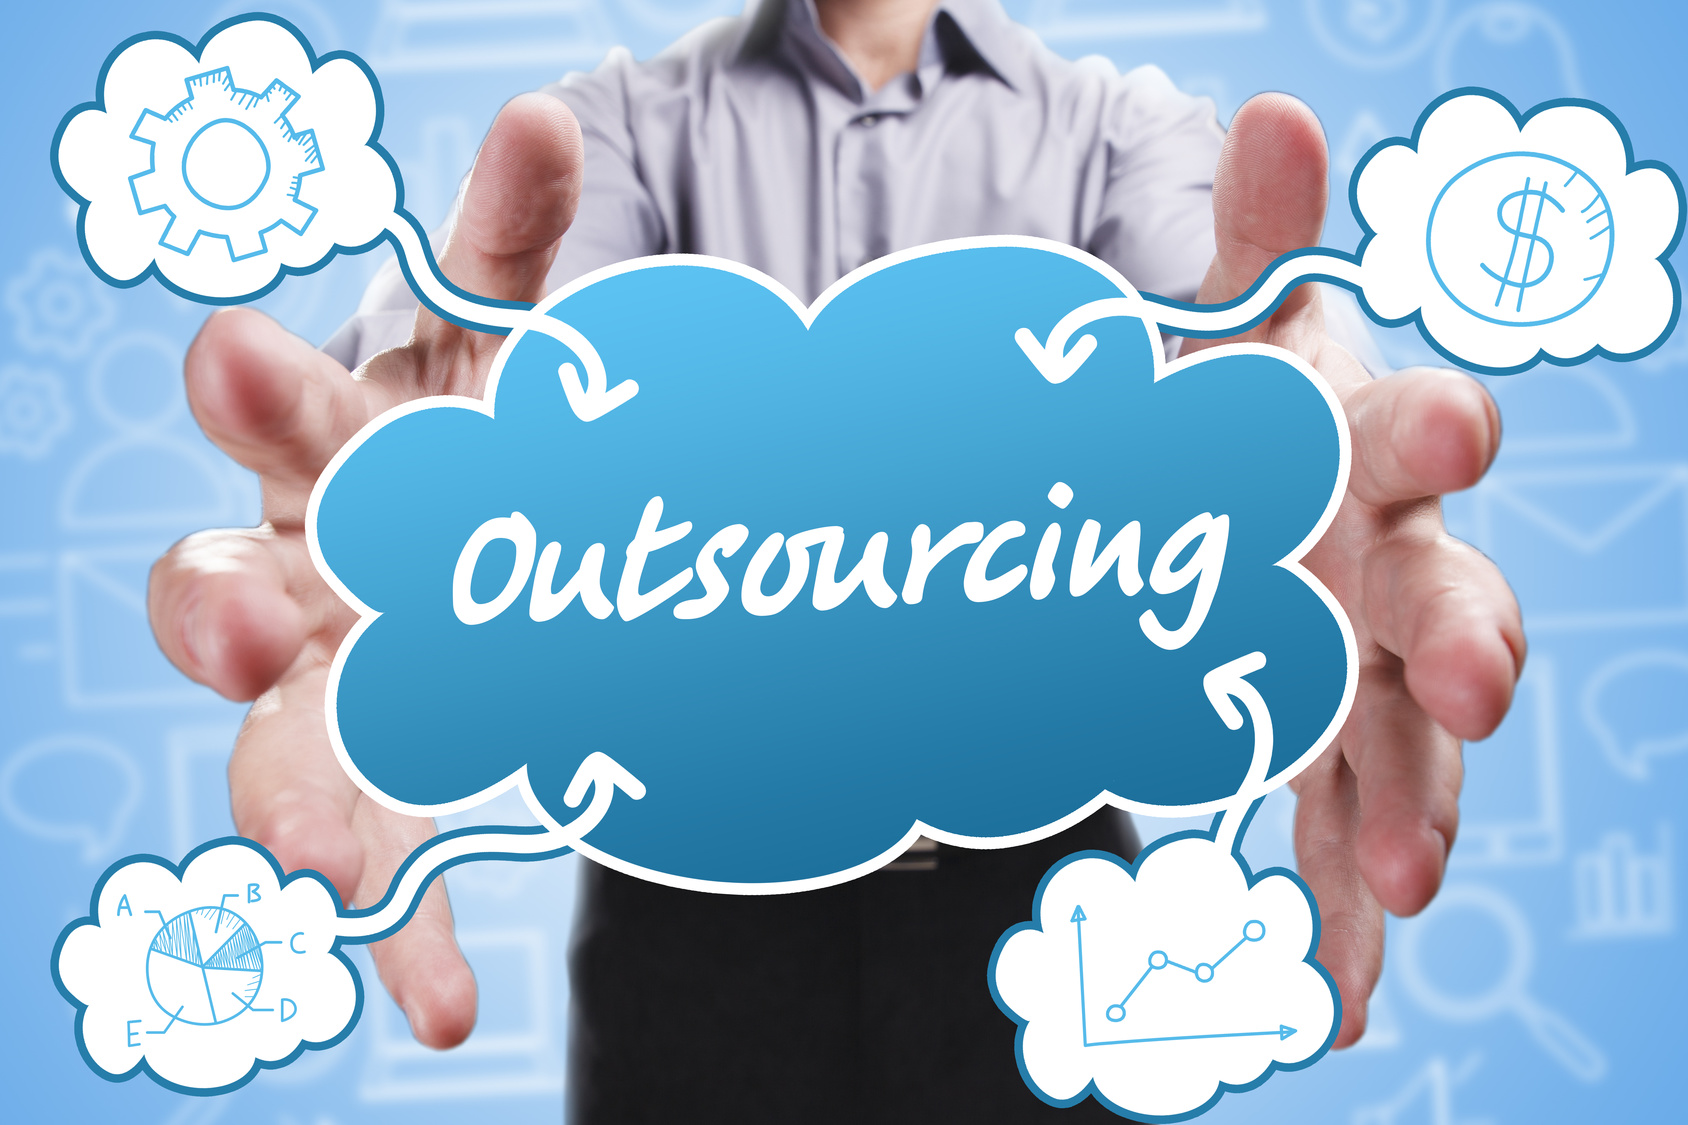 will seo outsourcing increase your roi webconfs com